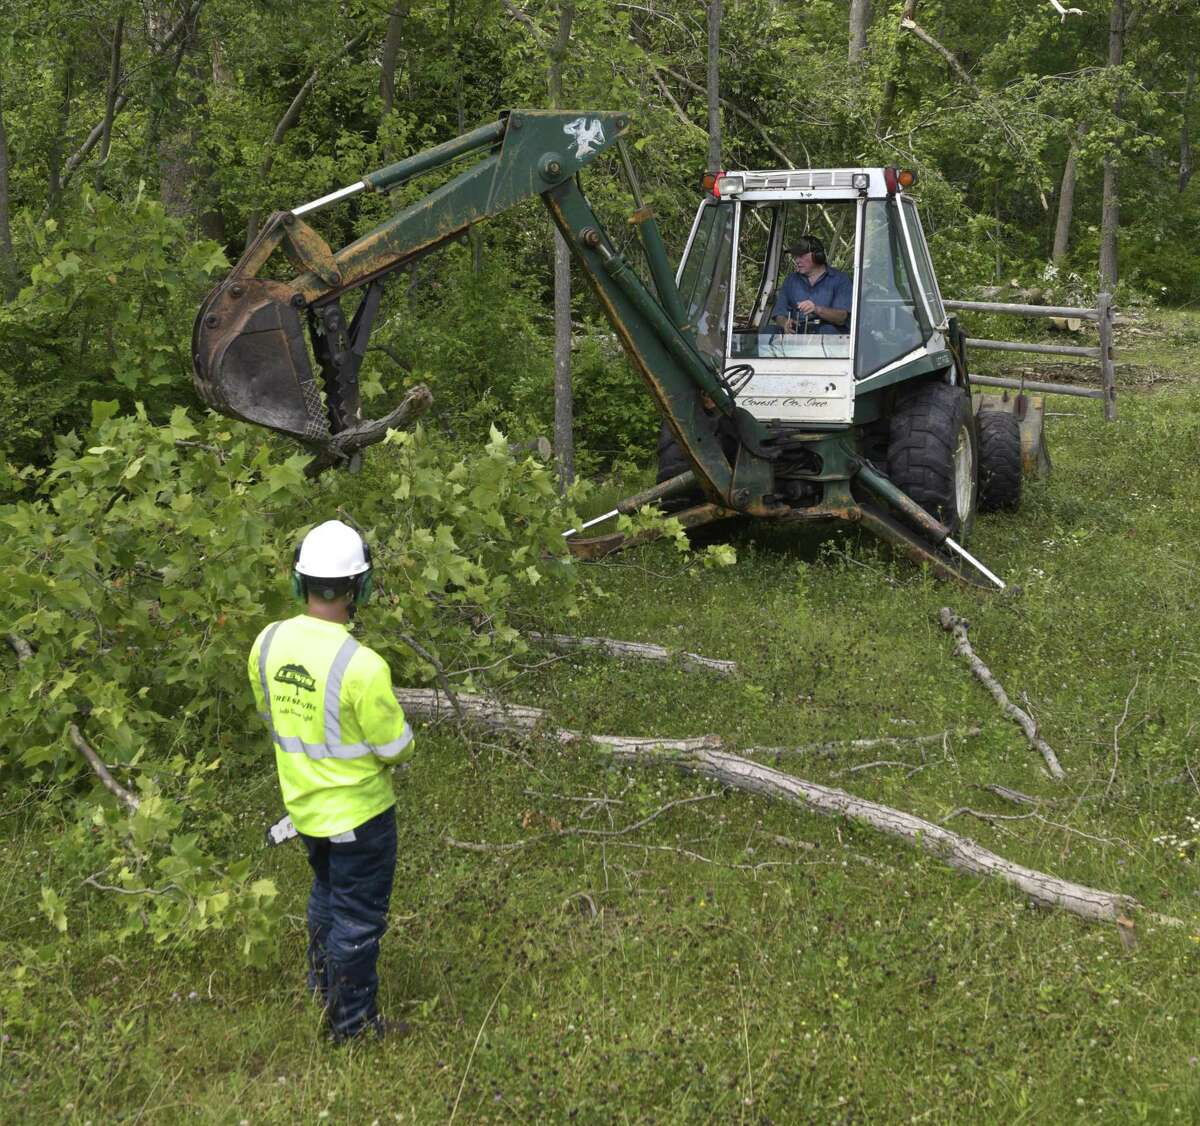 Silman Pinedo, left, and Bud Wright work on cleaning up the Still River Greenway. The trail had been closed since the May 15 storm that injured two people on the trail. Lewis Tree Service and Wright Tree Service donated their time to clear the trail from the police station to downtown.